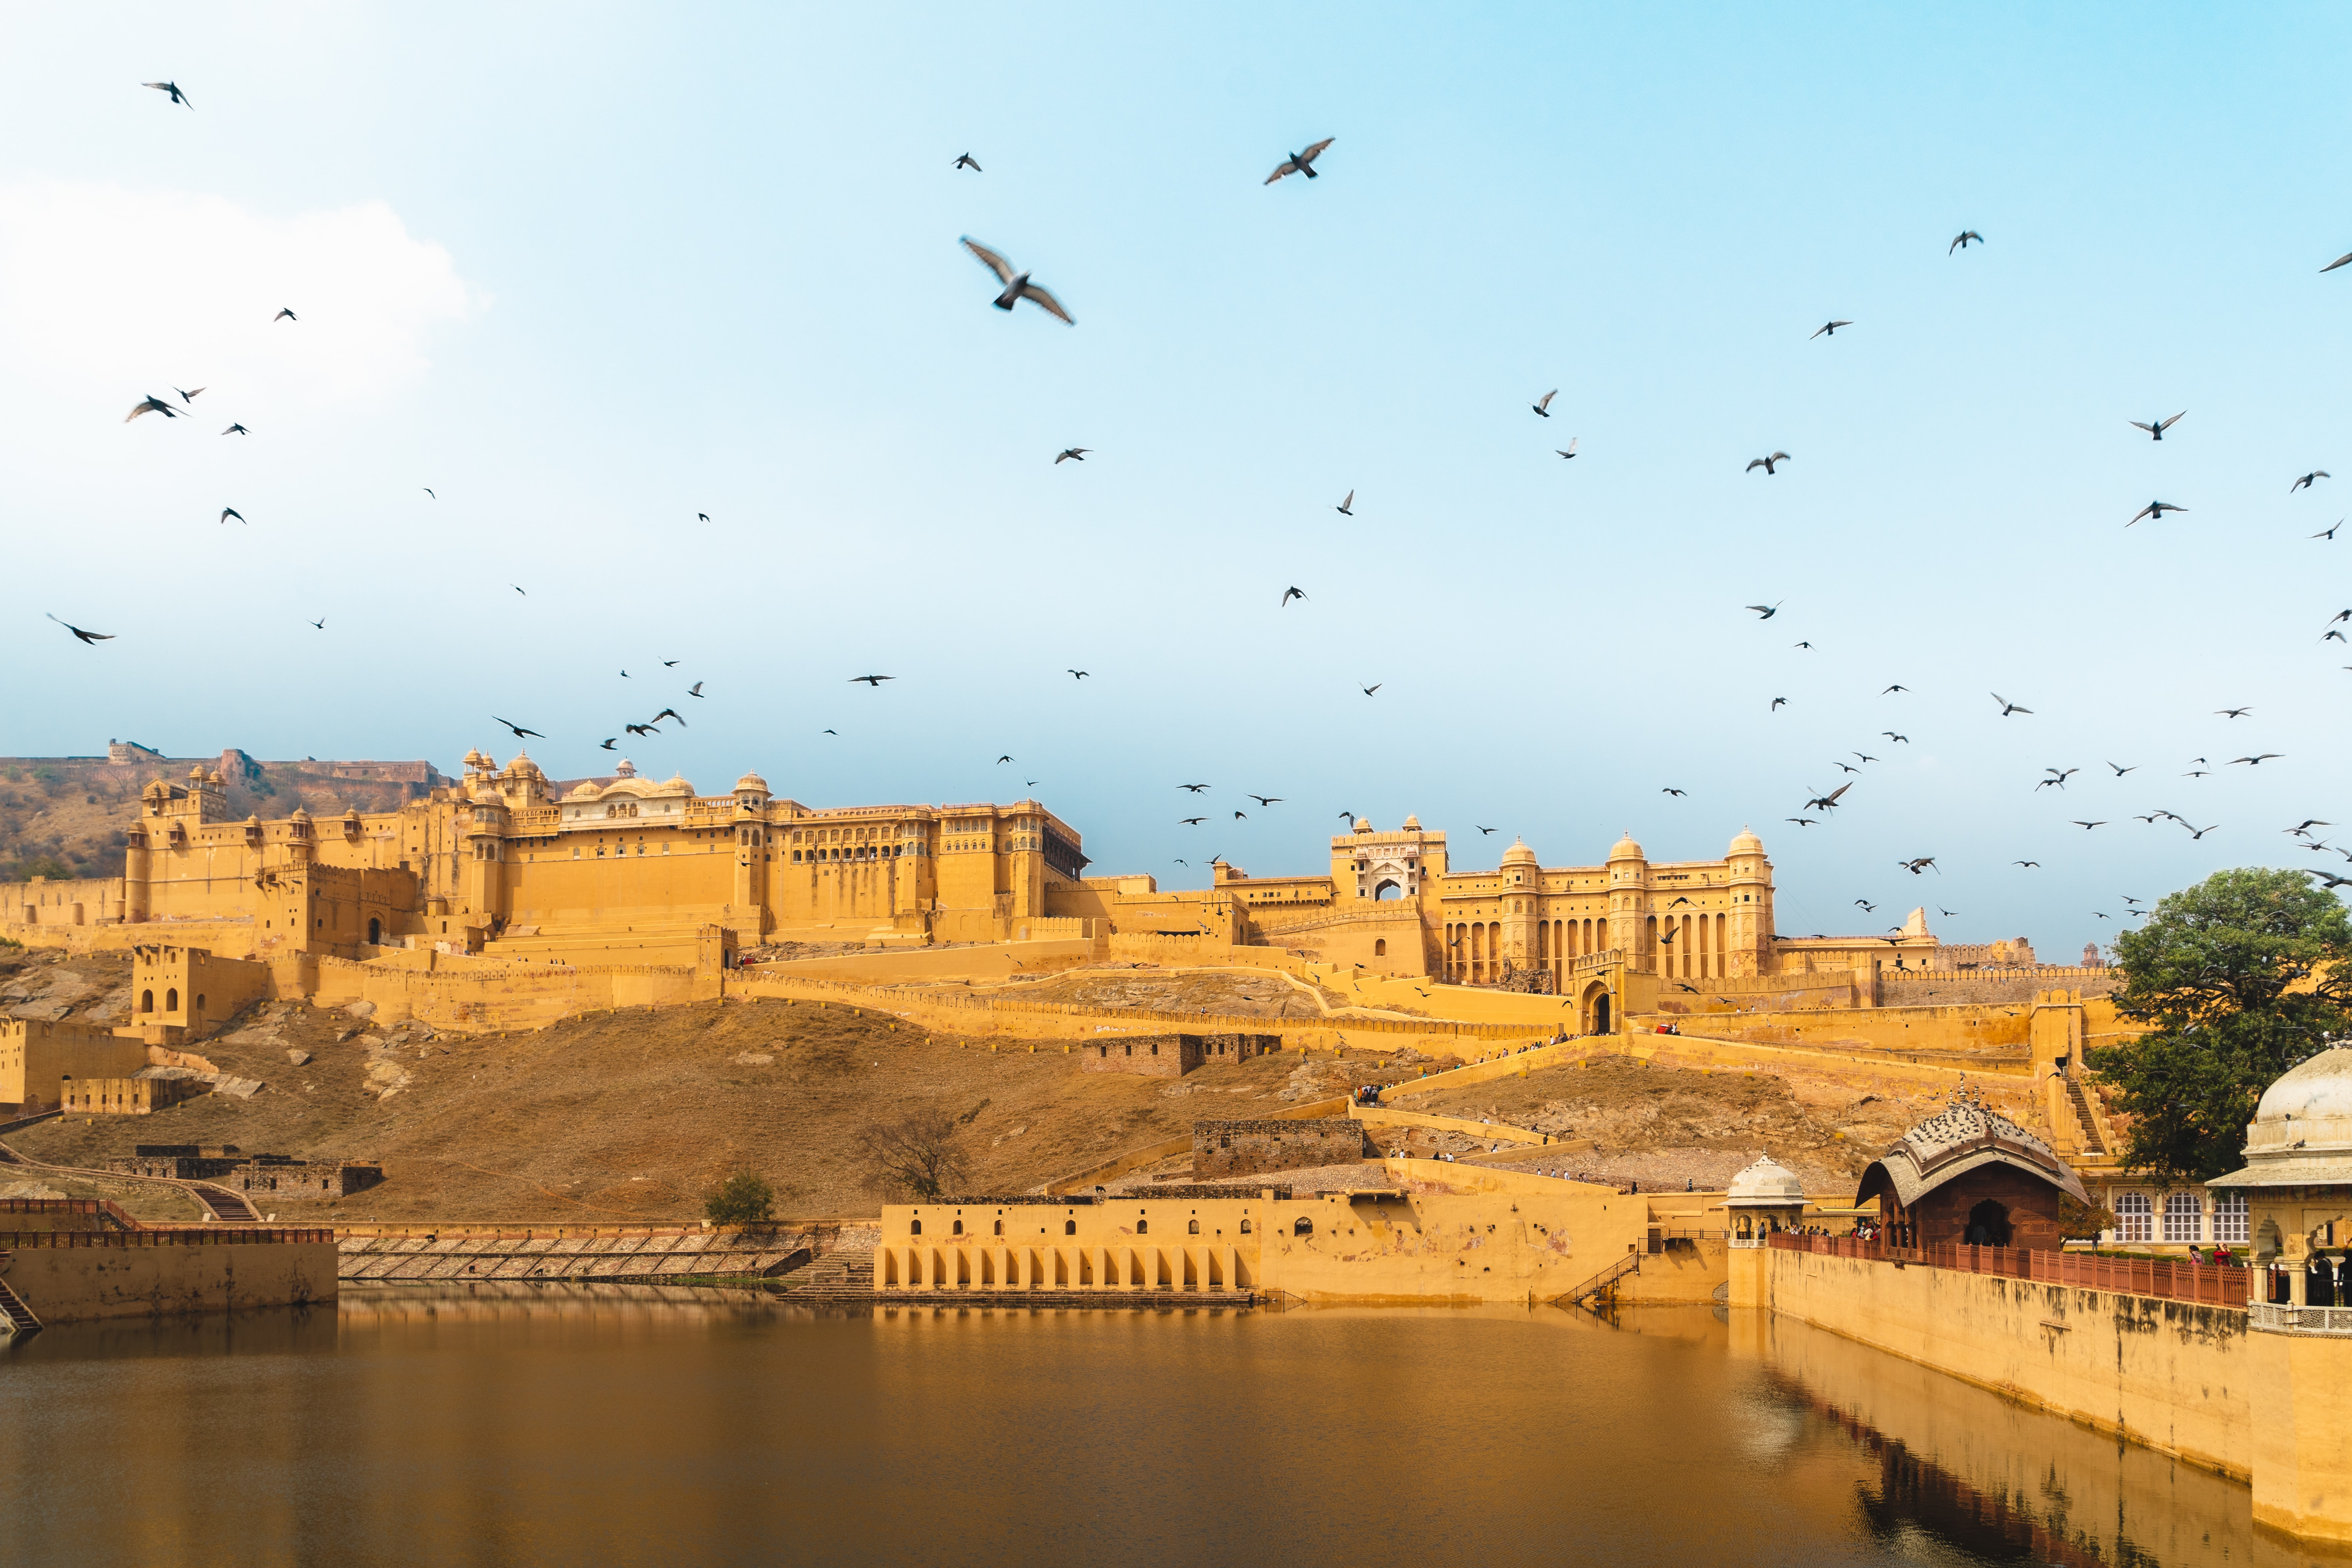 sandstone building with birds soaring overhead in jaipur, india